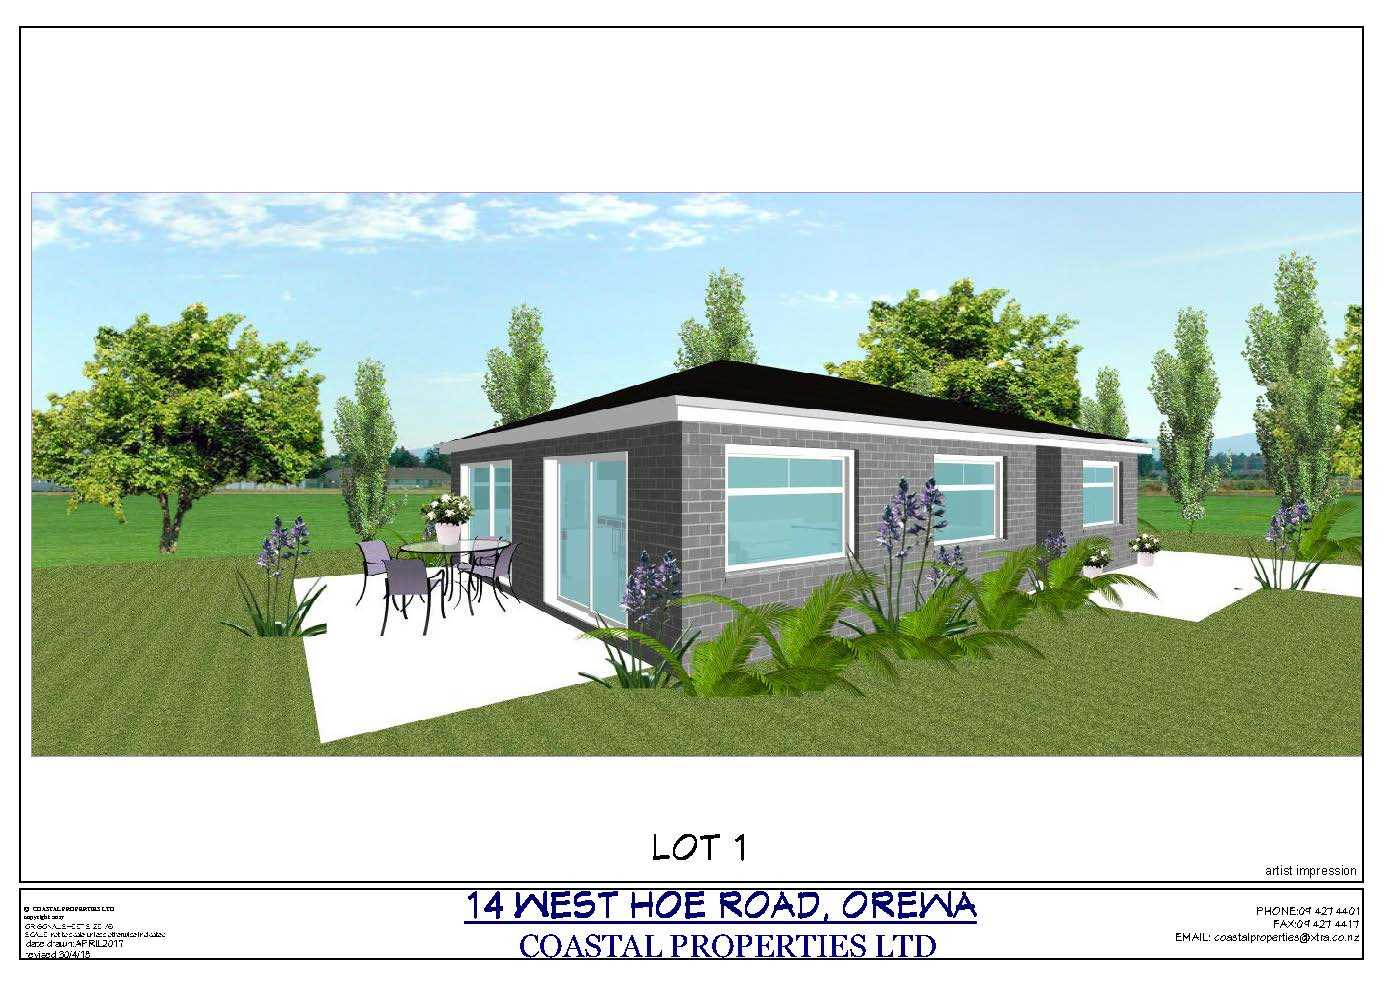 Affordable, Ideal Location & Brand New!